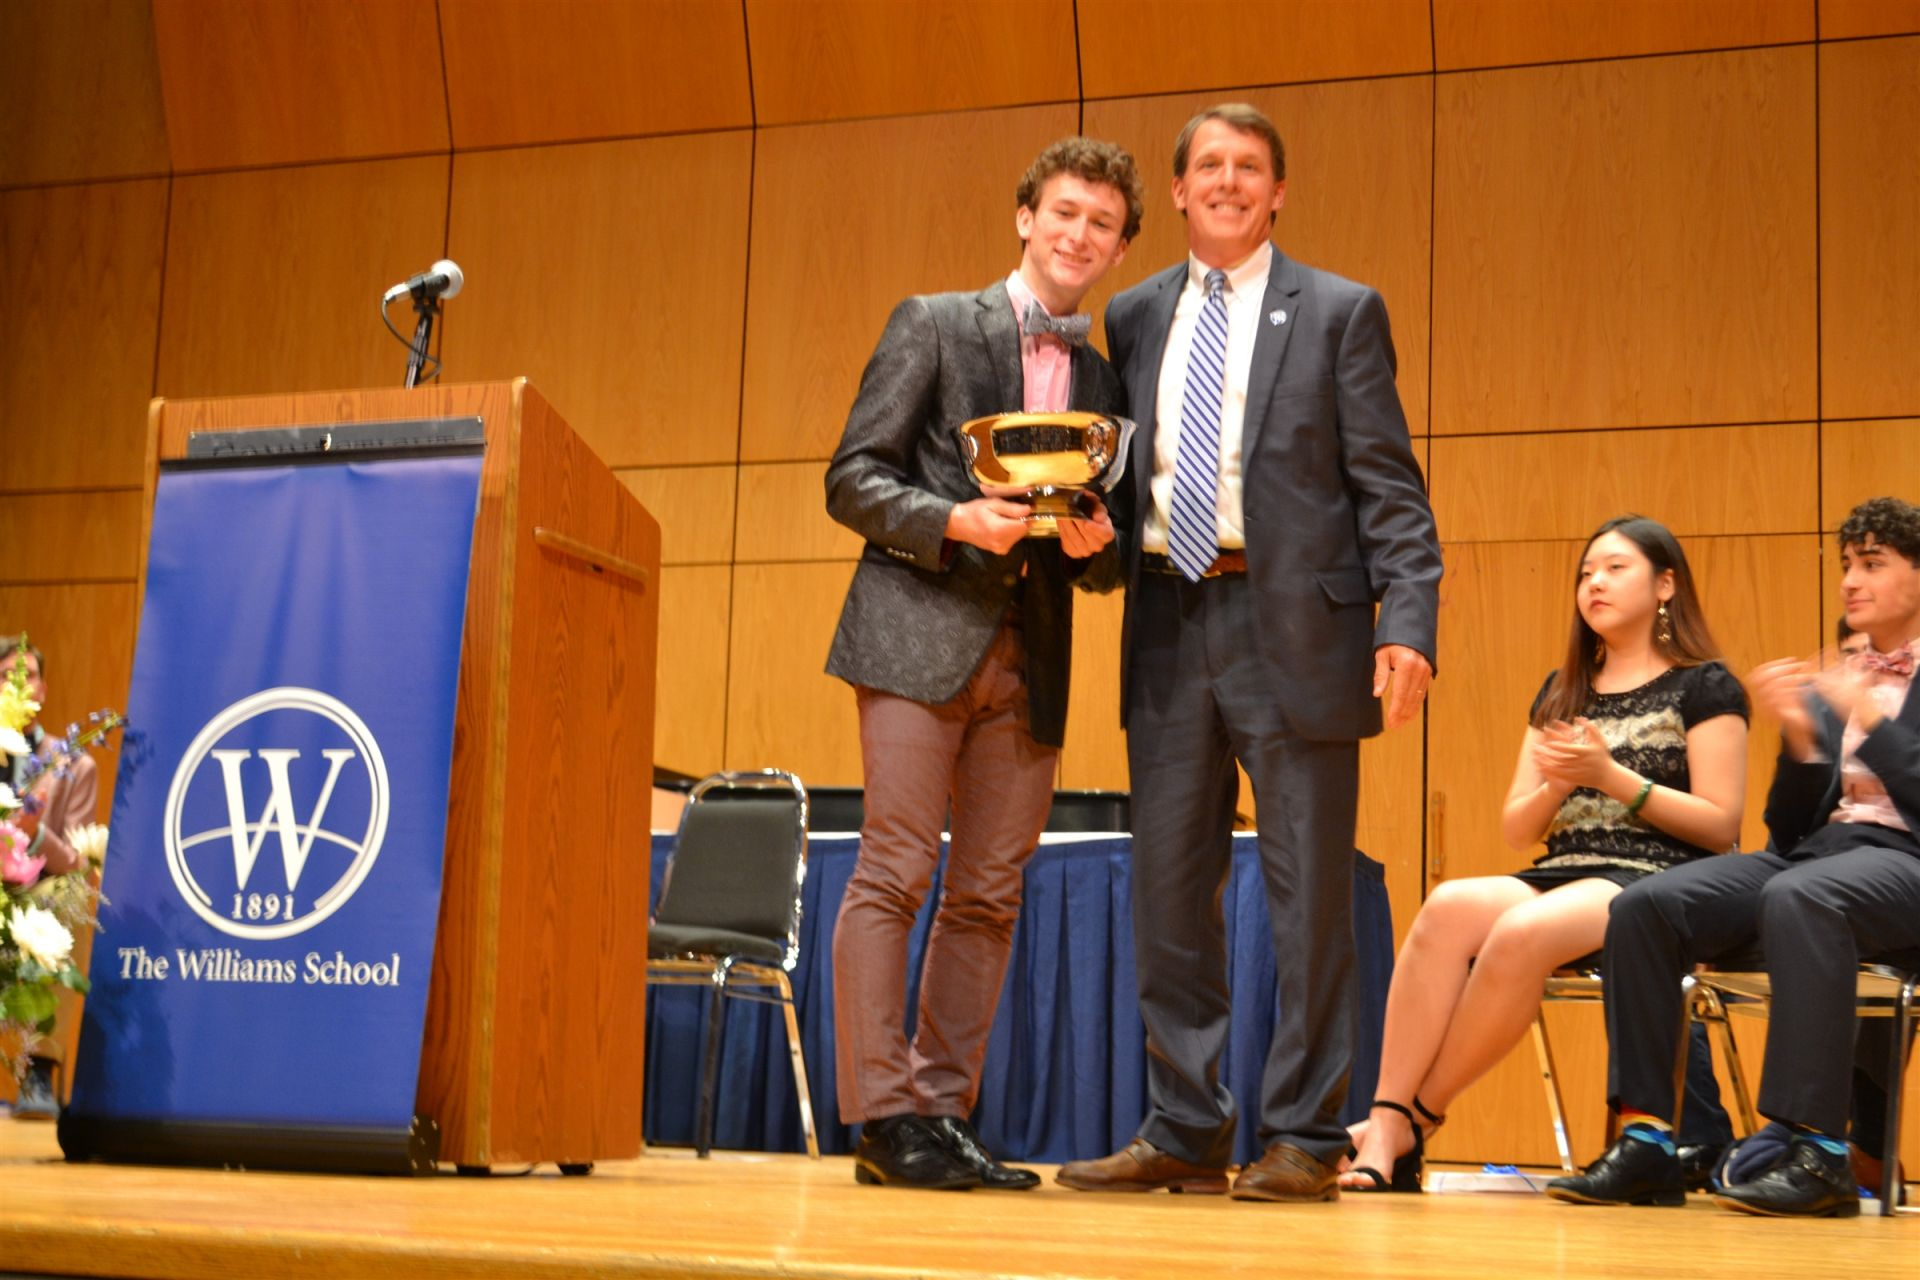 Samson was also awarded the Colin S. Buell Memorial Prize.